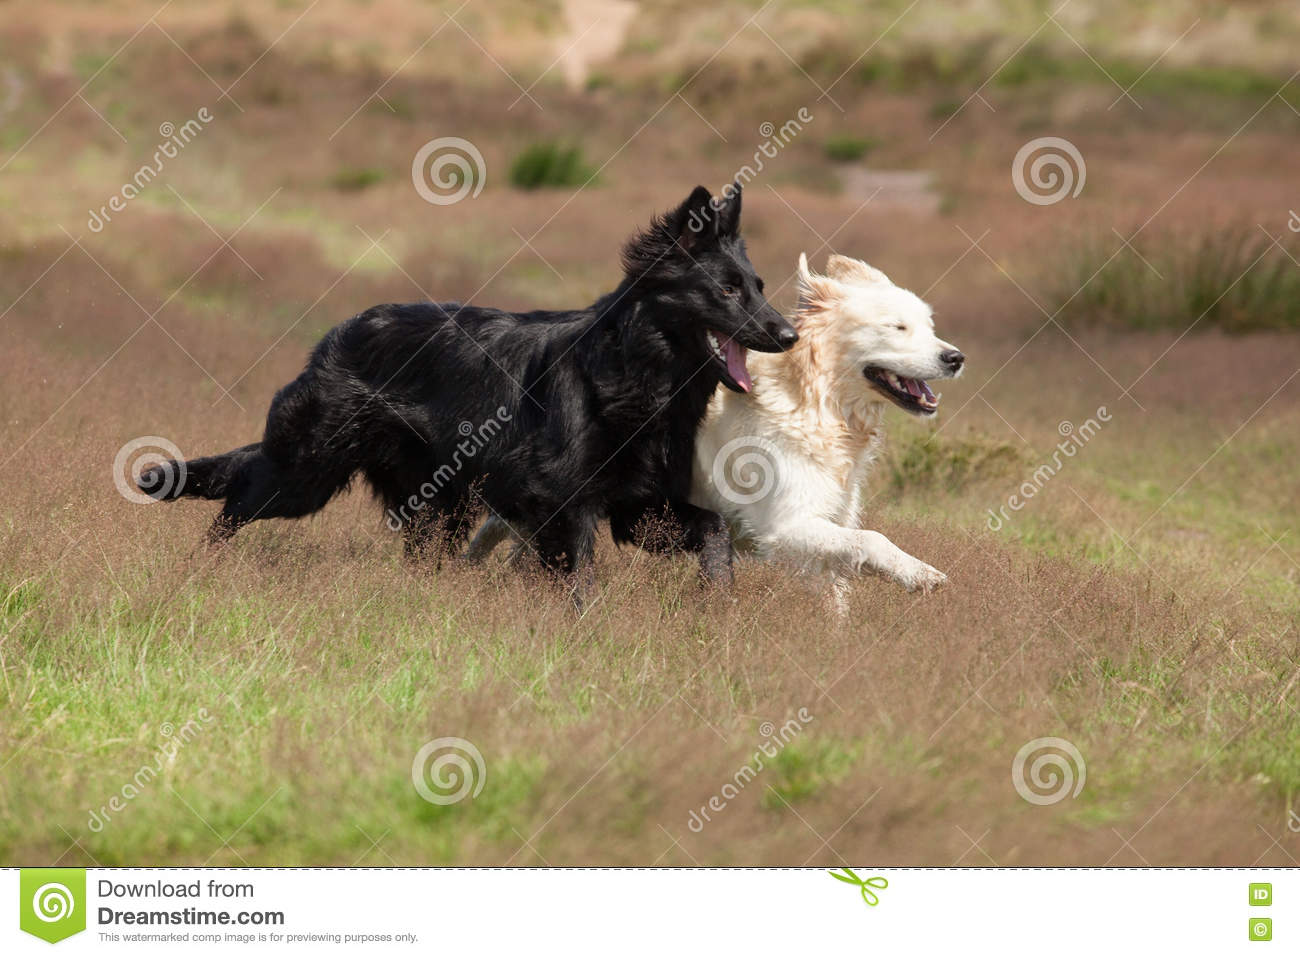 Black And White Dogs Running Together Stock Photo Image Of Flair